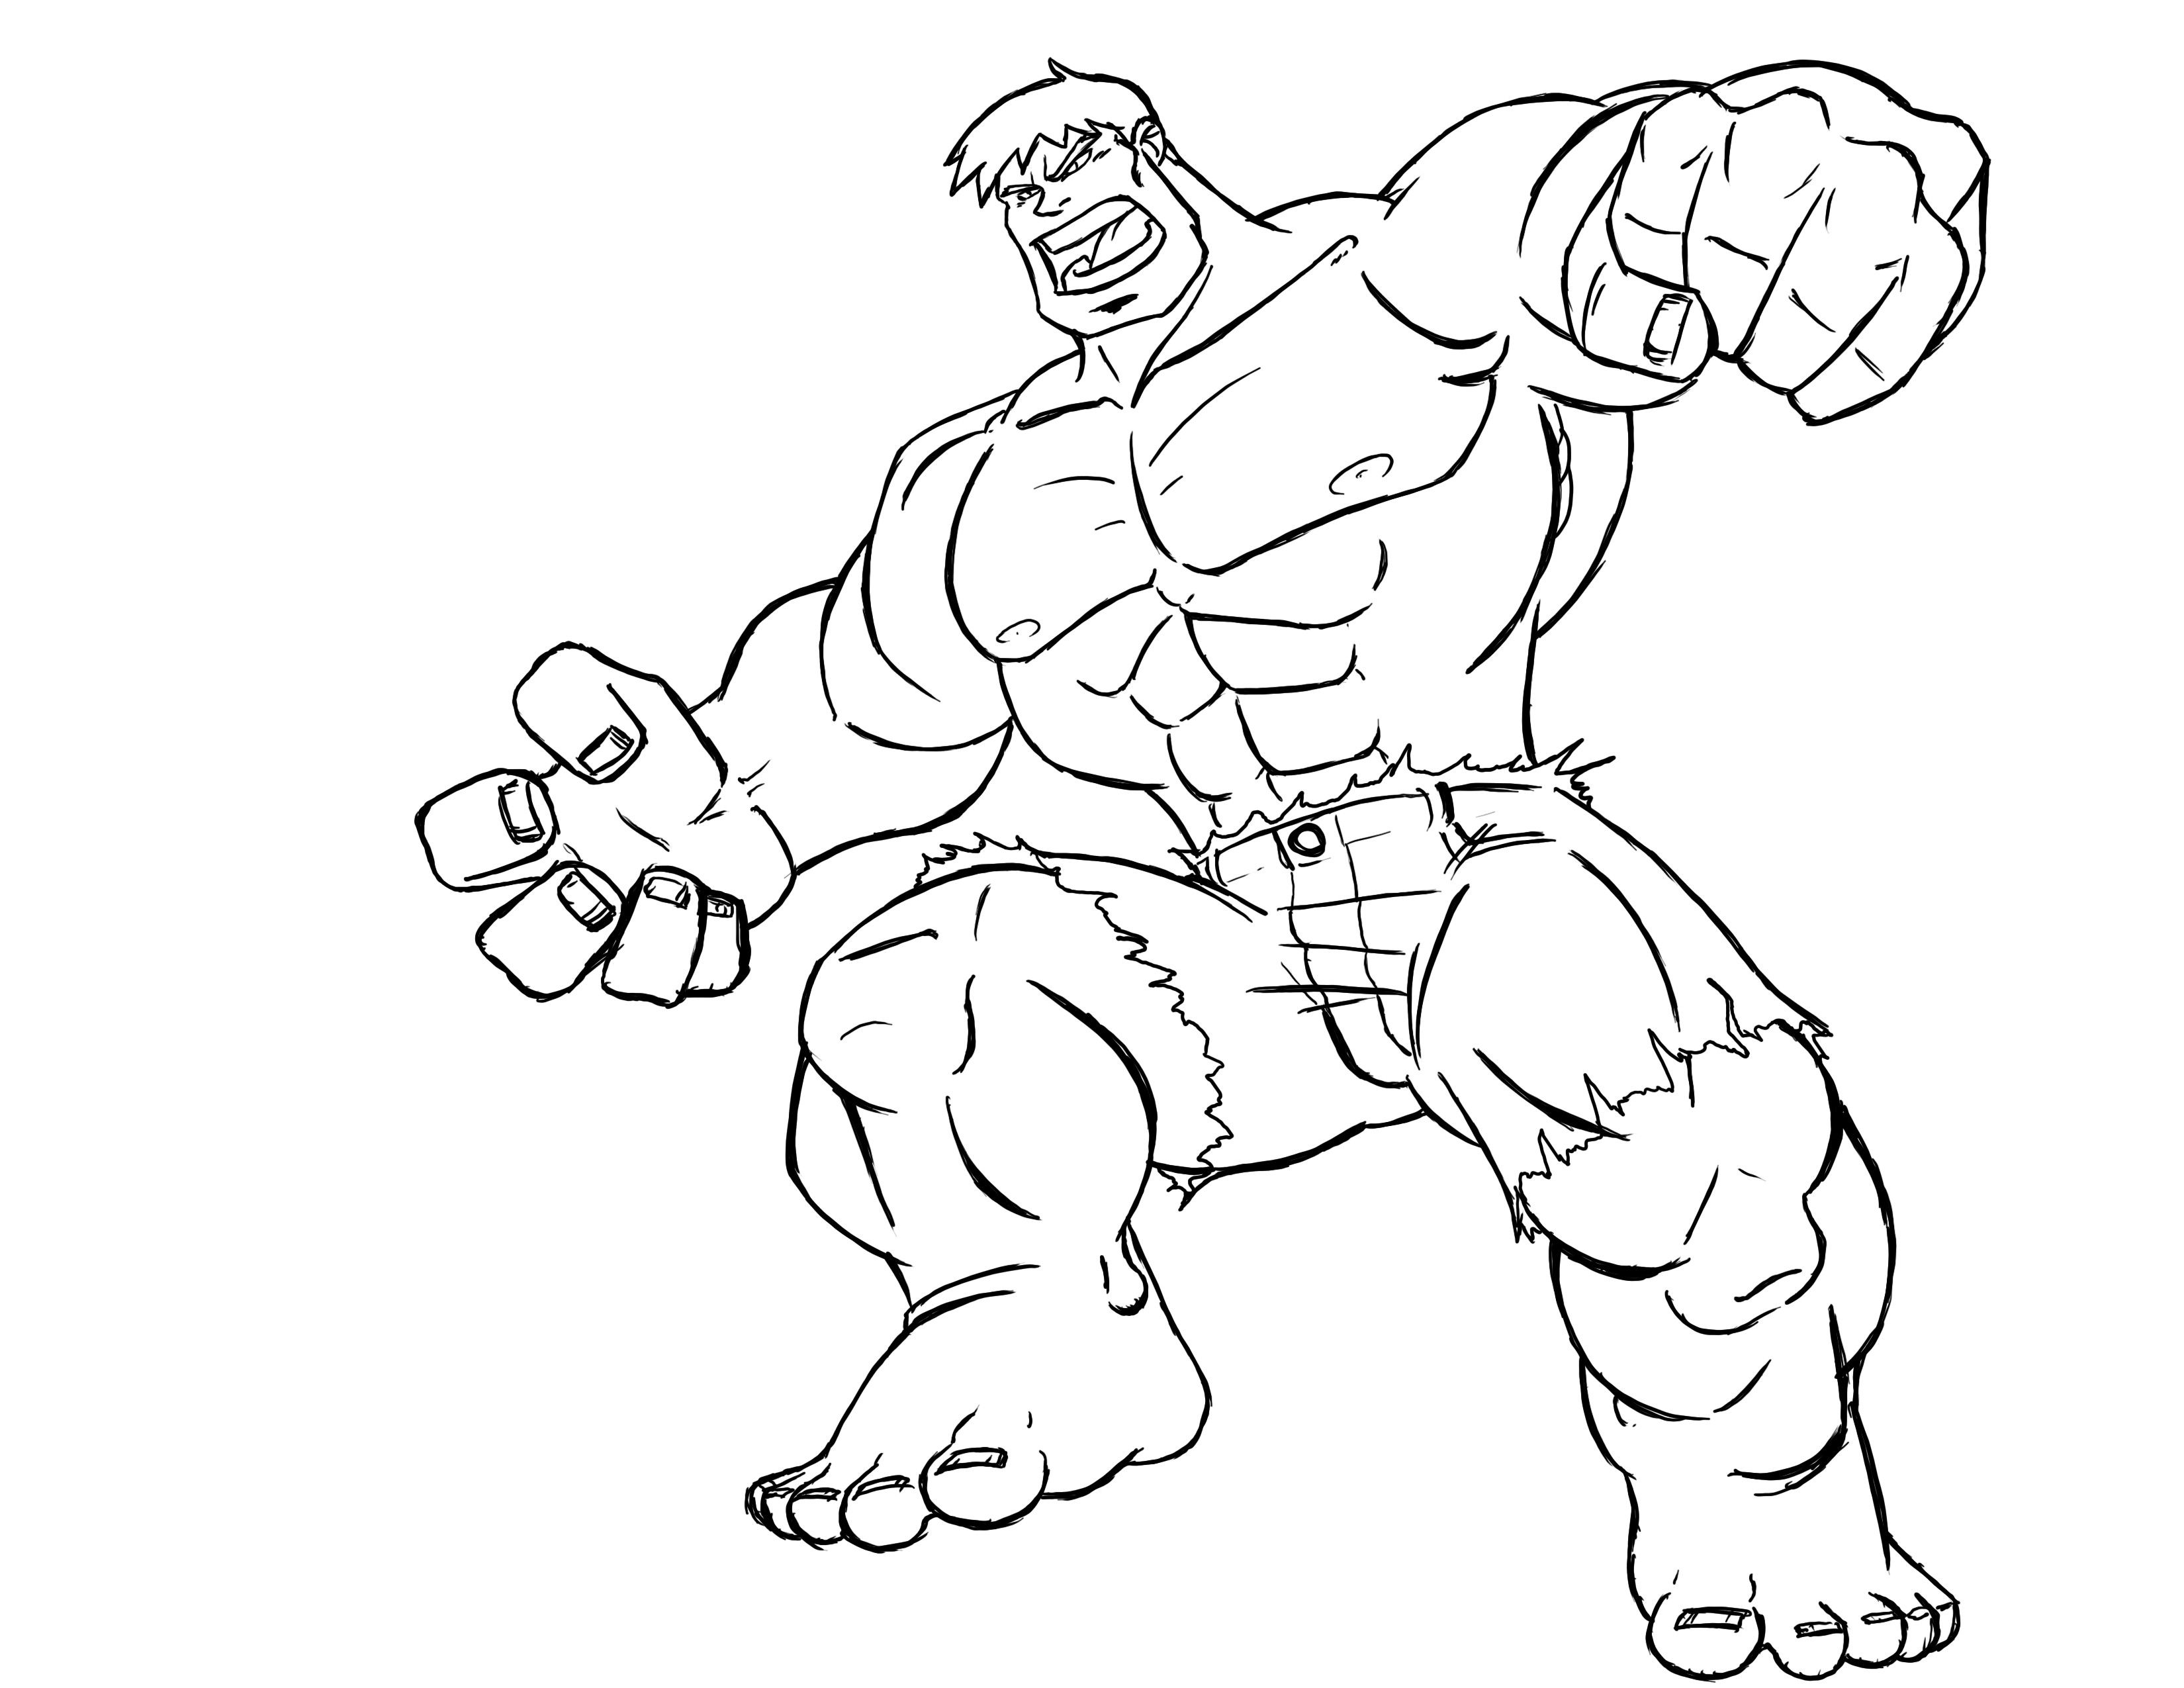 Super Hero Coloring Page New Superhero Coloring Pages Hulk Coloring Pages Patinsudouest Superhero Coloring Pages Superhero Coloring Avengers Coloring Pages